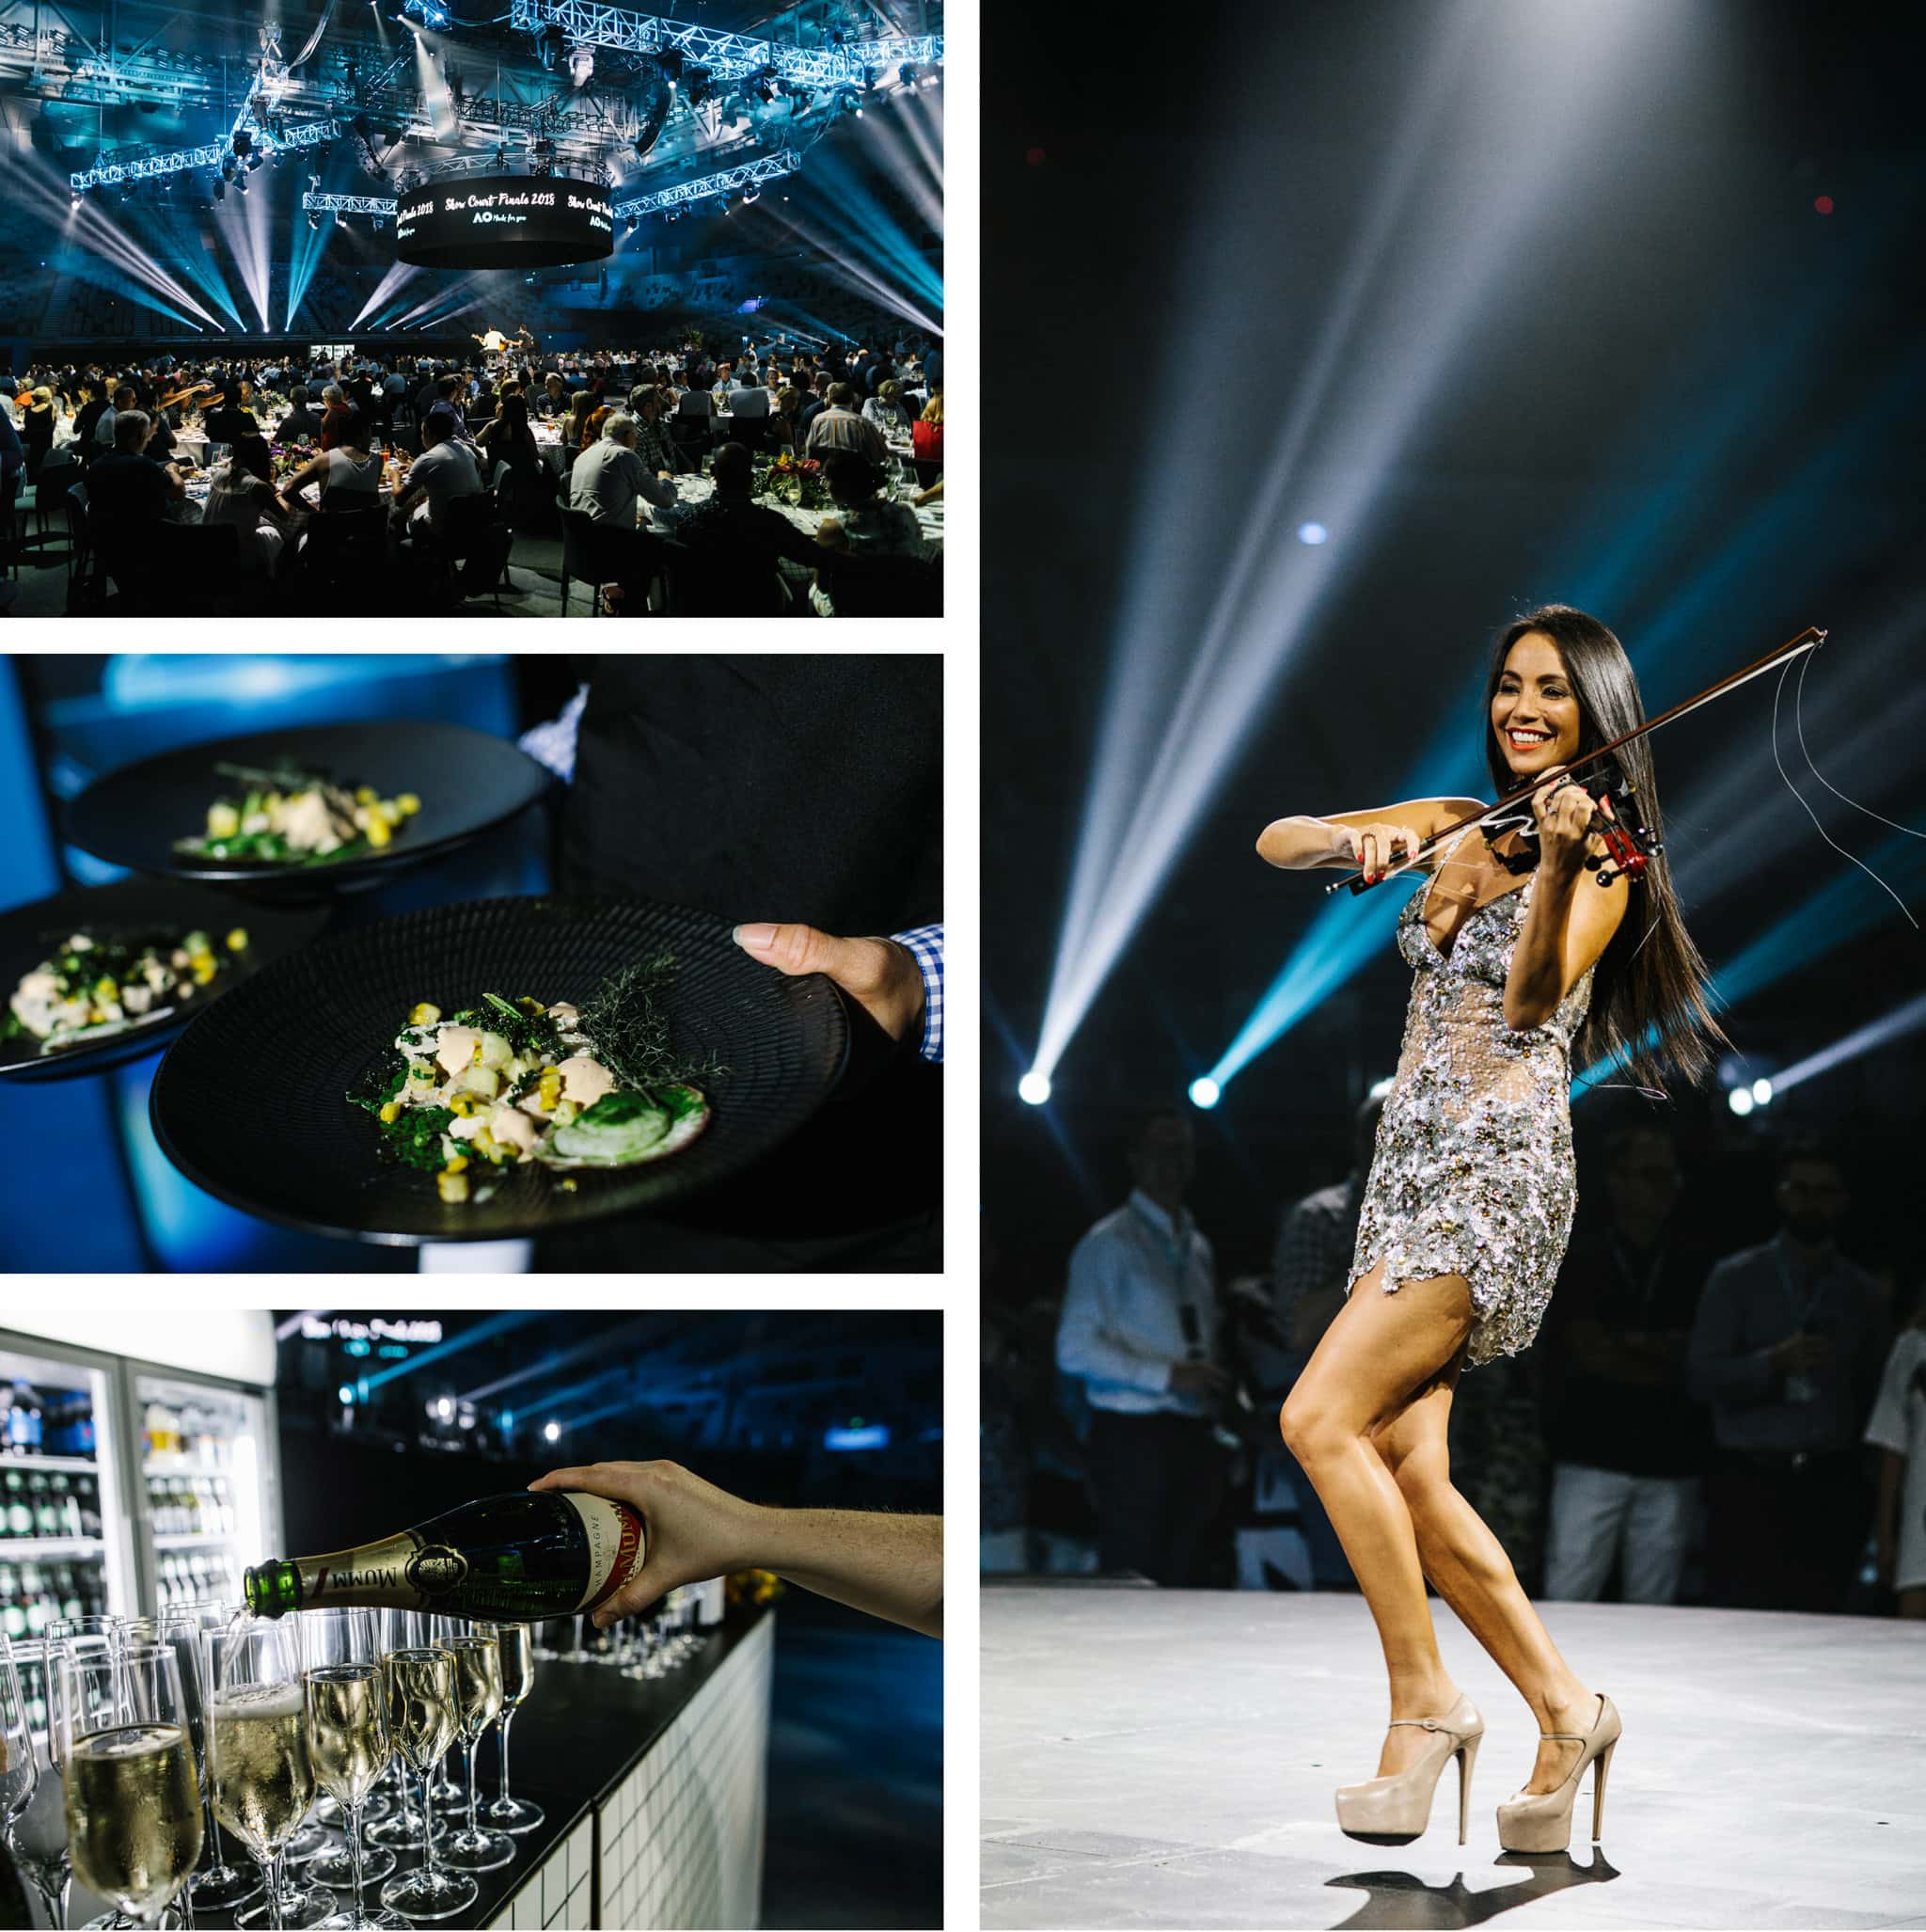 commercial vip event photographer - exclusive and creative